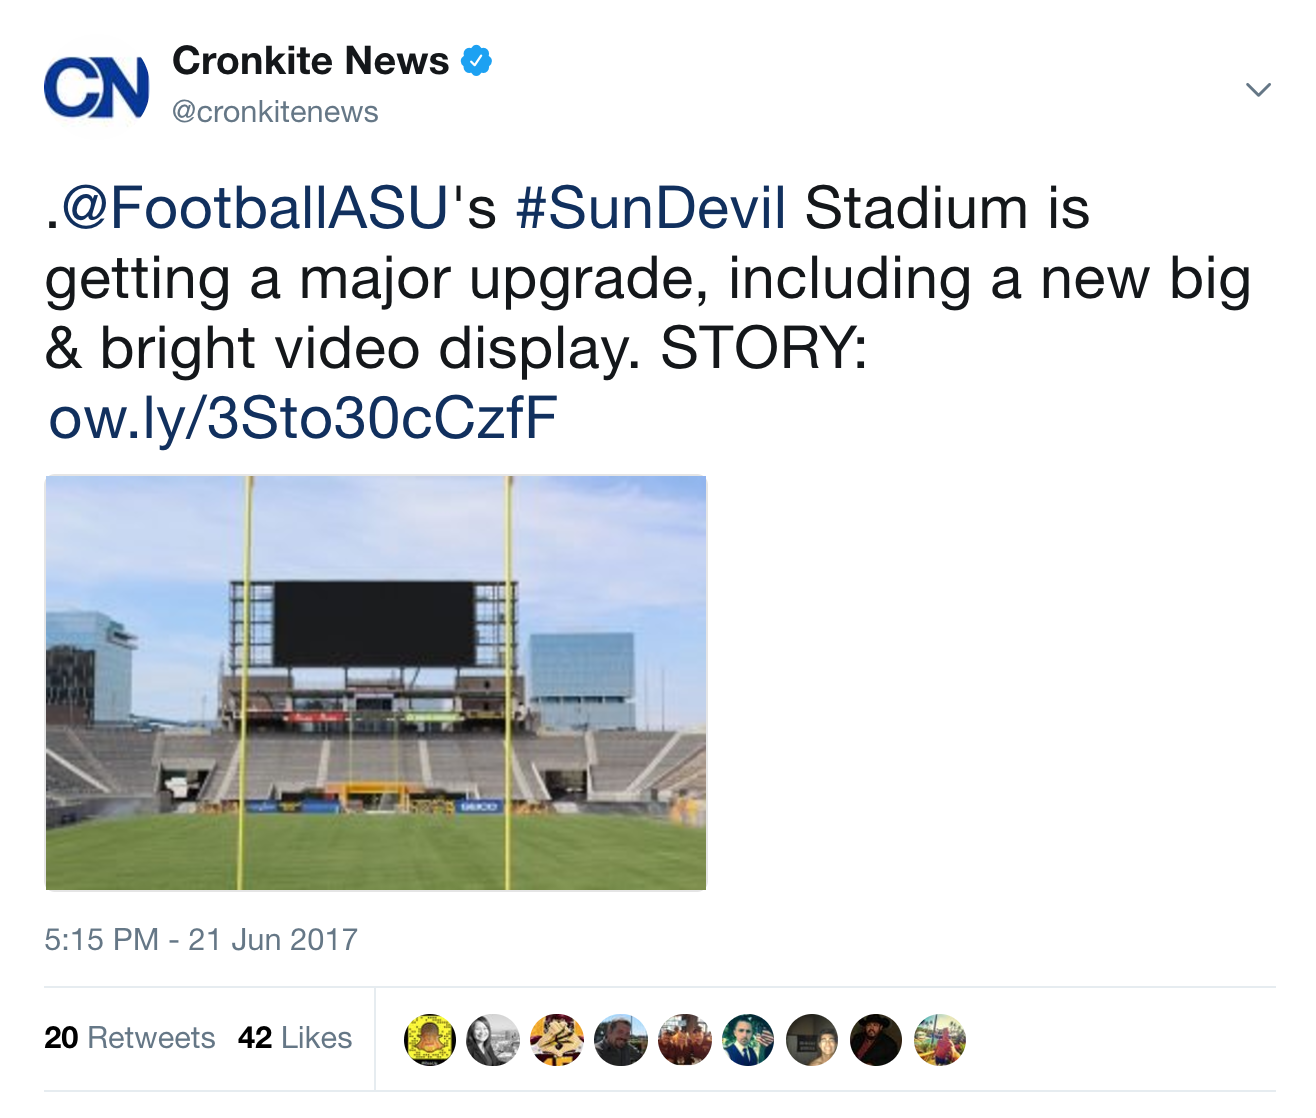 "Tweet from Cronkite News (@cronkitenews) at 5:15PM, 21 June 2017, that reads: "".@FootballASU's #SunDevil Stadium is getting a major upgrade, including a new big & bright video display. STORY: ow.ly/3Sto30cCzfF"" and is accompanied by na image of the large screen at the Sen Devil Stadium.The tweet has 20 retweets and 42 likes."